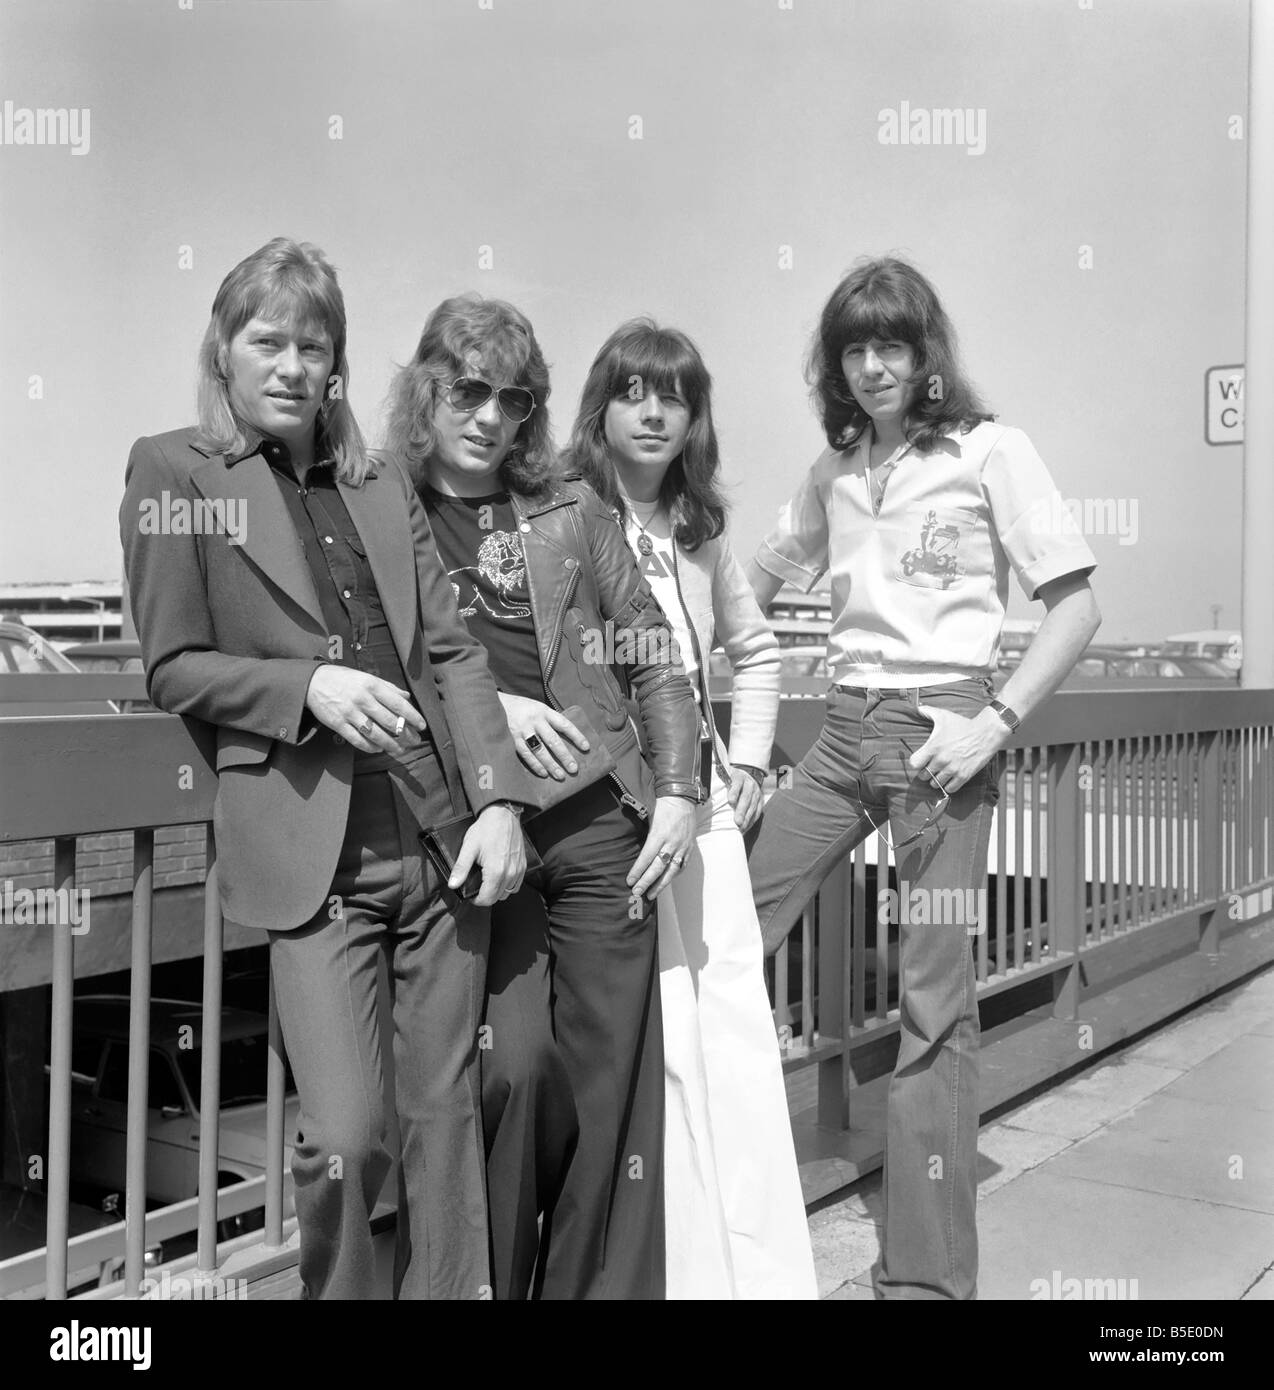 pop group the sweet at london airport june 1975 stock photo royalty free image 20591361 alamy. Black Bedroom Furniture Sets. Home Design Ideas